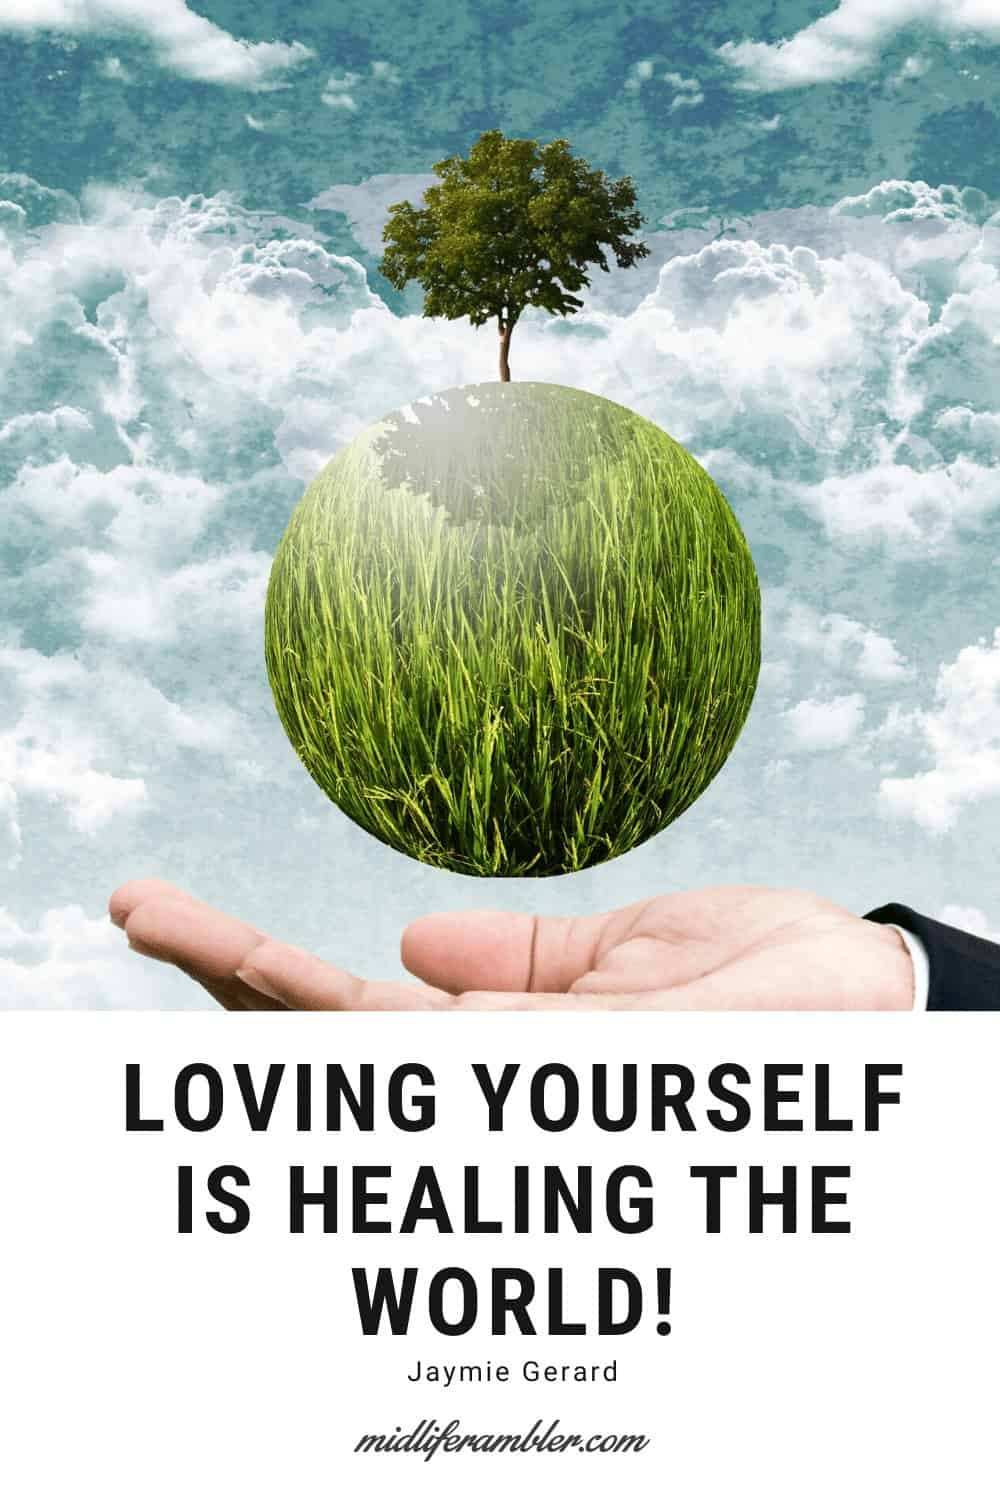 50 Self-Compassion Quotes and Affirmations to Help You Learn to Love and Accept Yourself - Loving Yourself is Healing the World! –  Jaymie Gerard